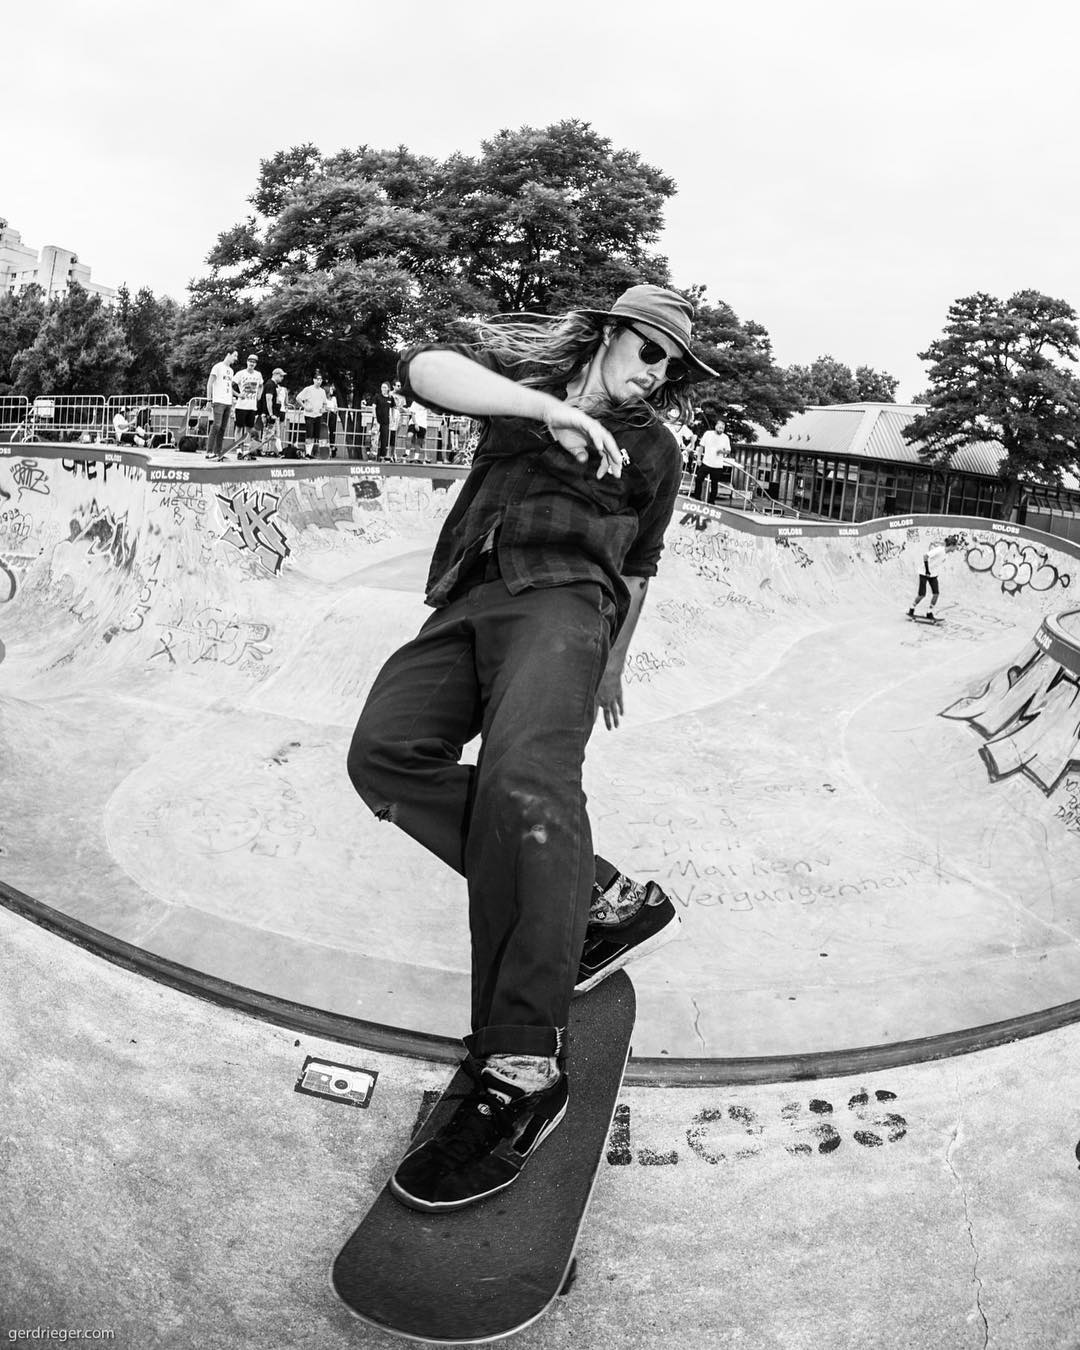 Luka Windhund with a nicely decked out front rock at the BERGFEST last weekend. See more photos and article over on the Bailgun site. www.bailgun.com/category/news #bergfest #bergfidel #poolparty #pool #bowl #concrete #skateboarding #bailgun #kolossskateboards #minusramps #bierenergie #monsterbowl